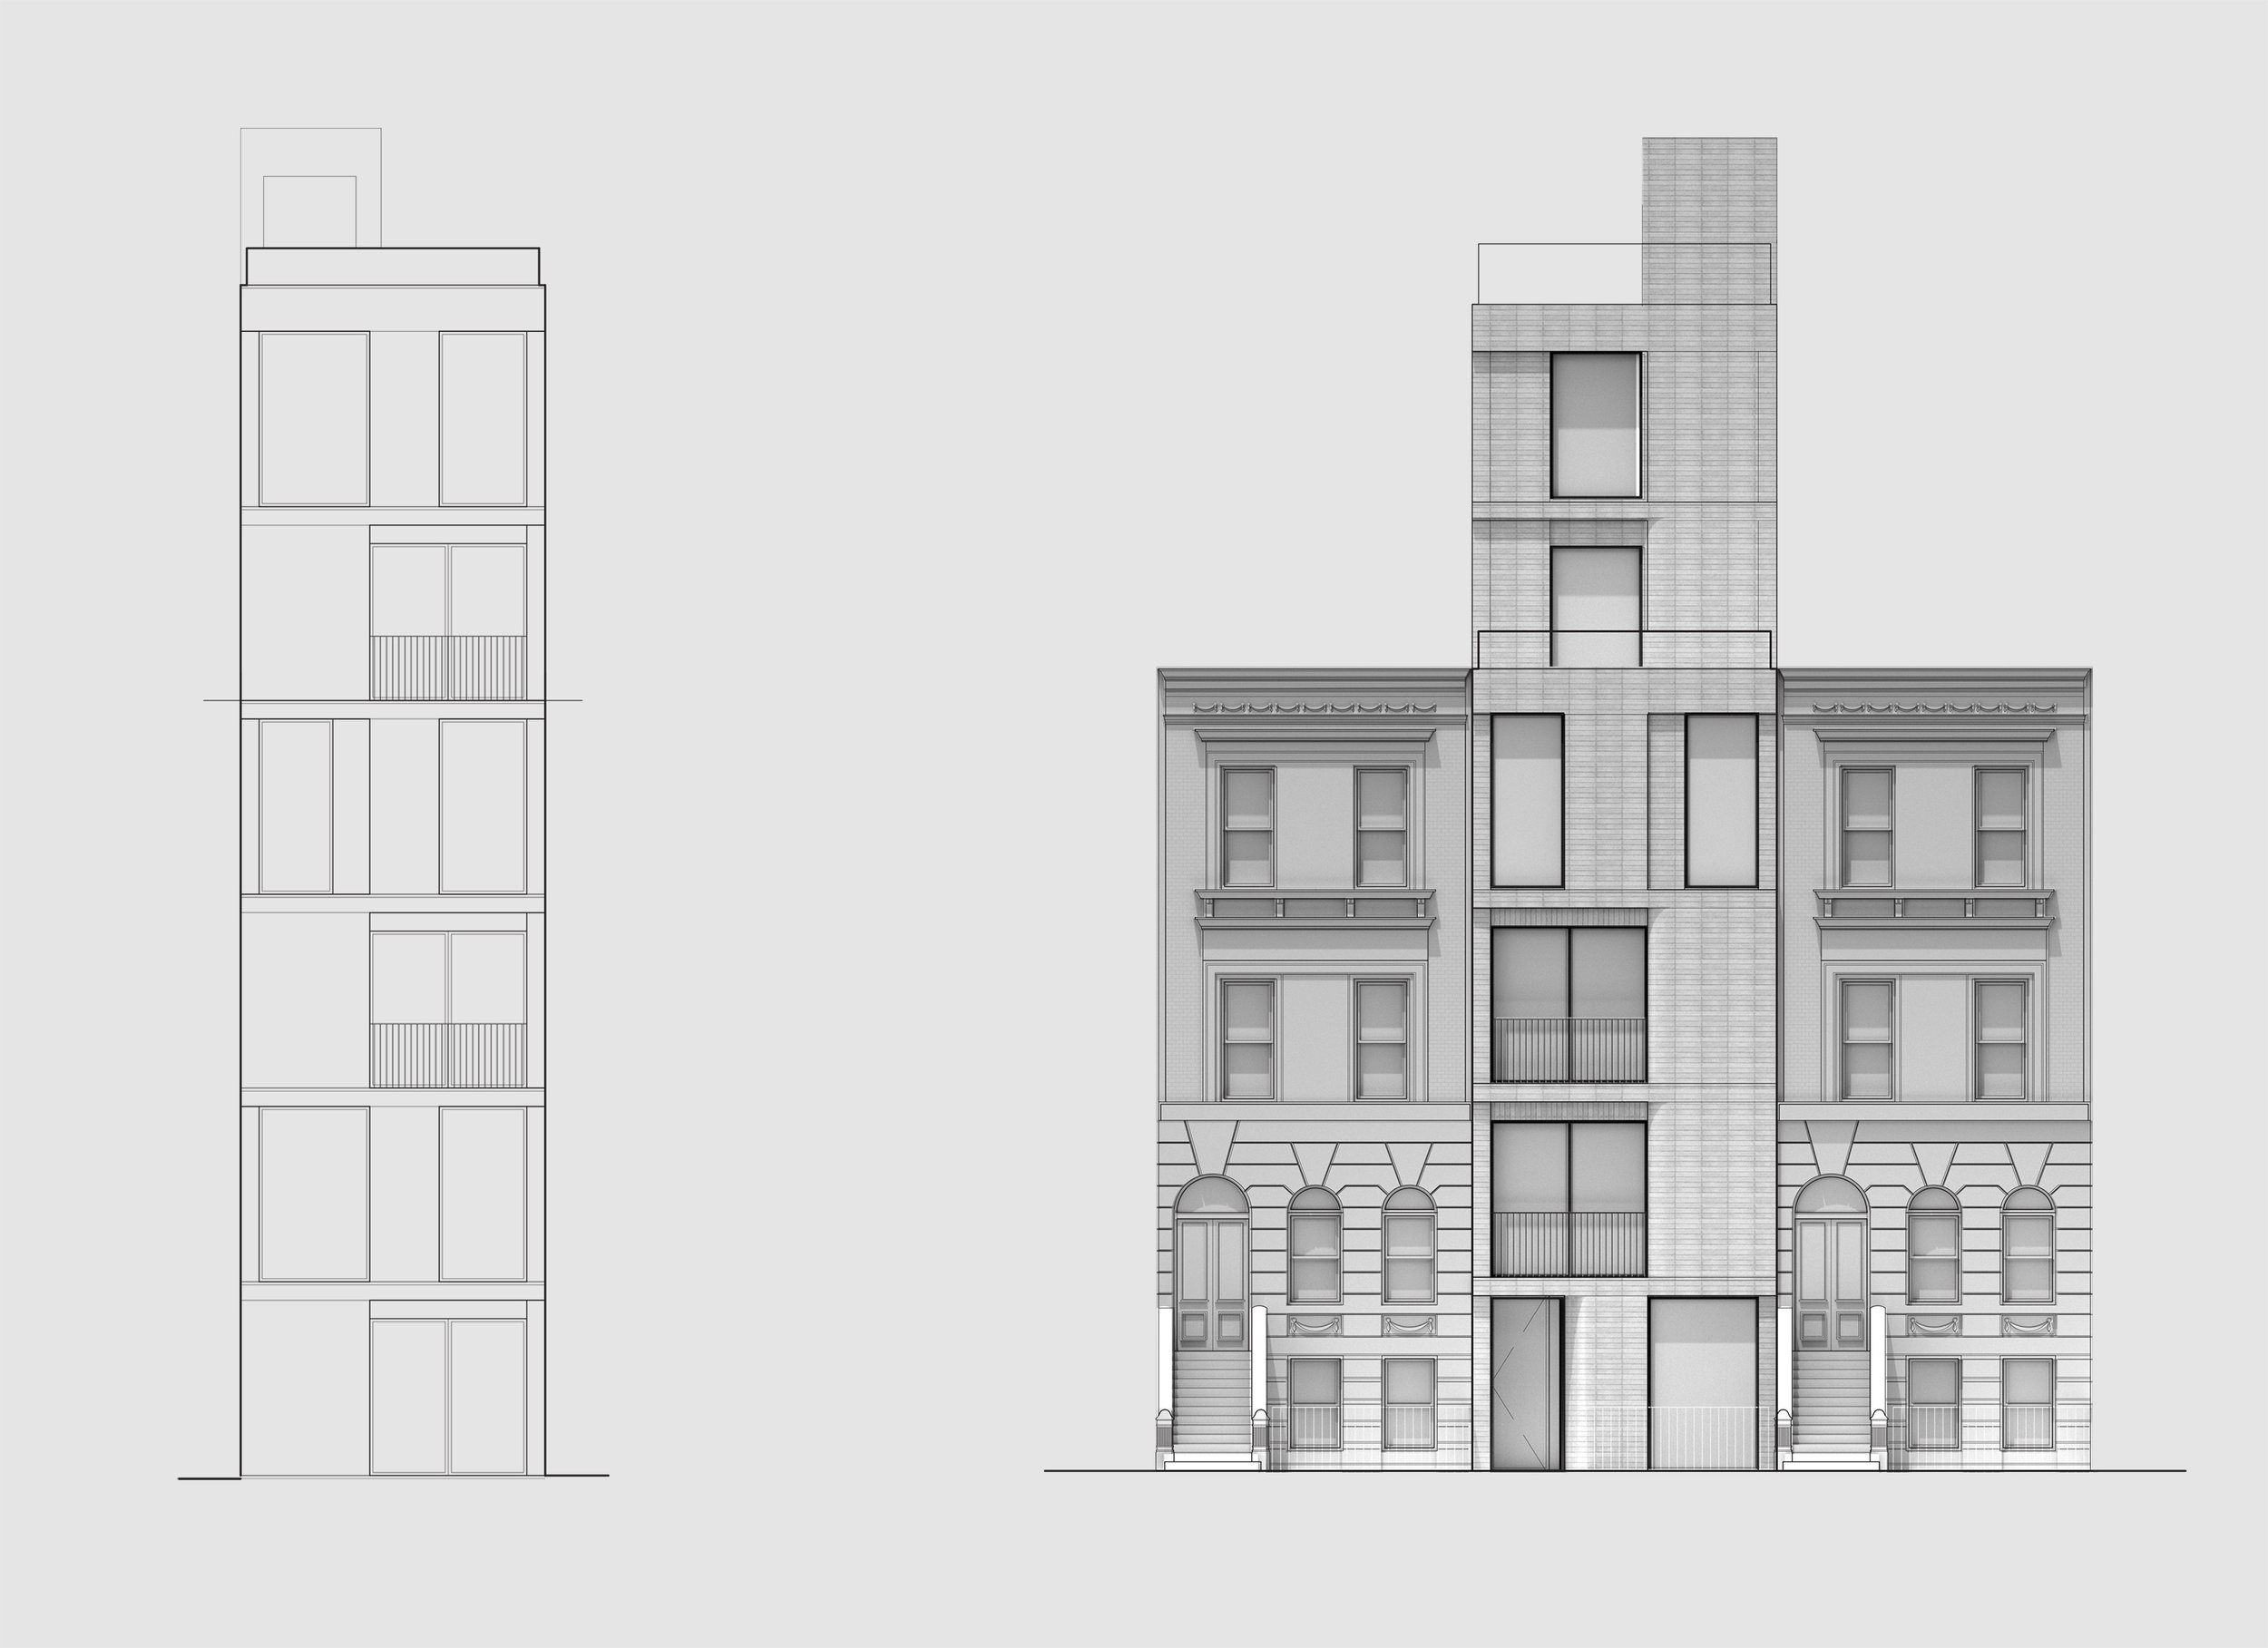 Exterior elevations, rear and front.